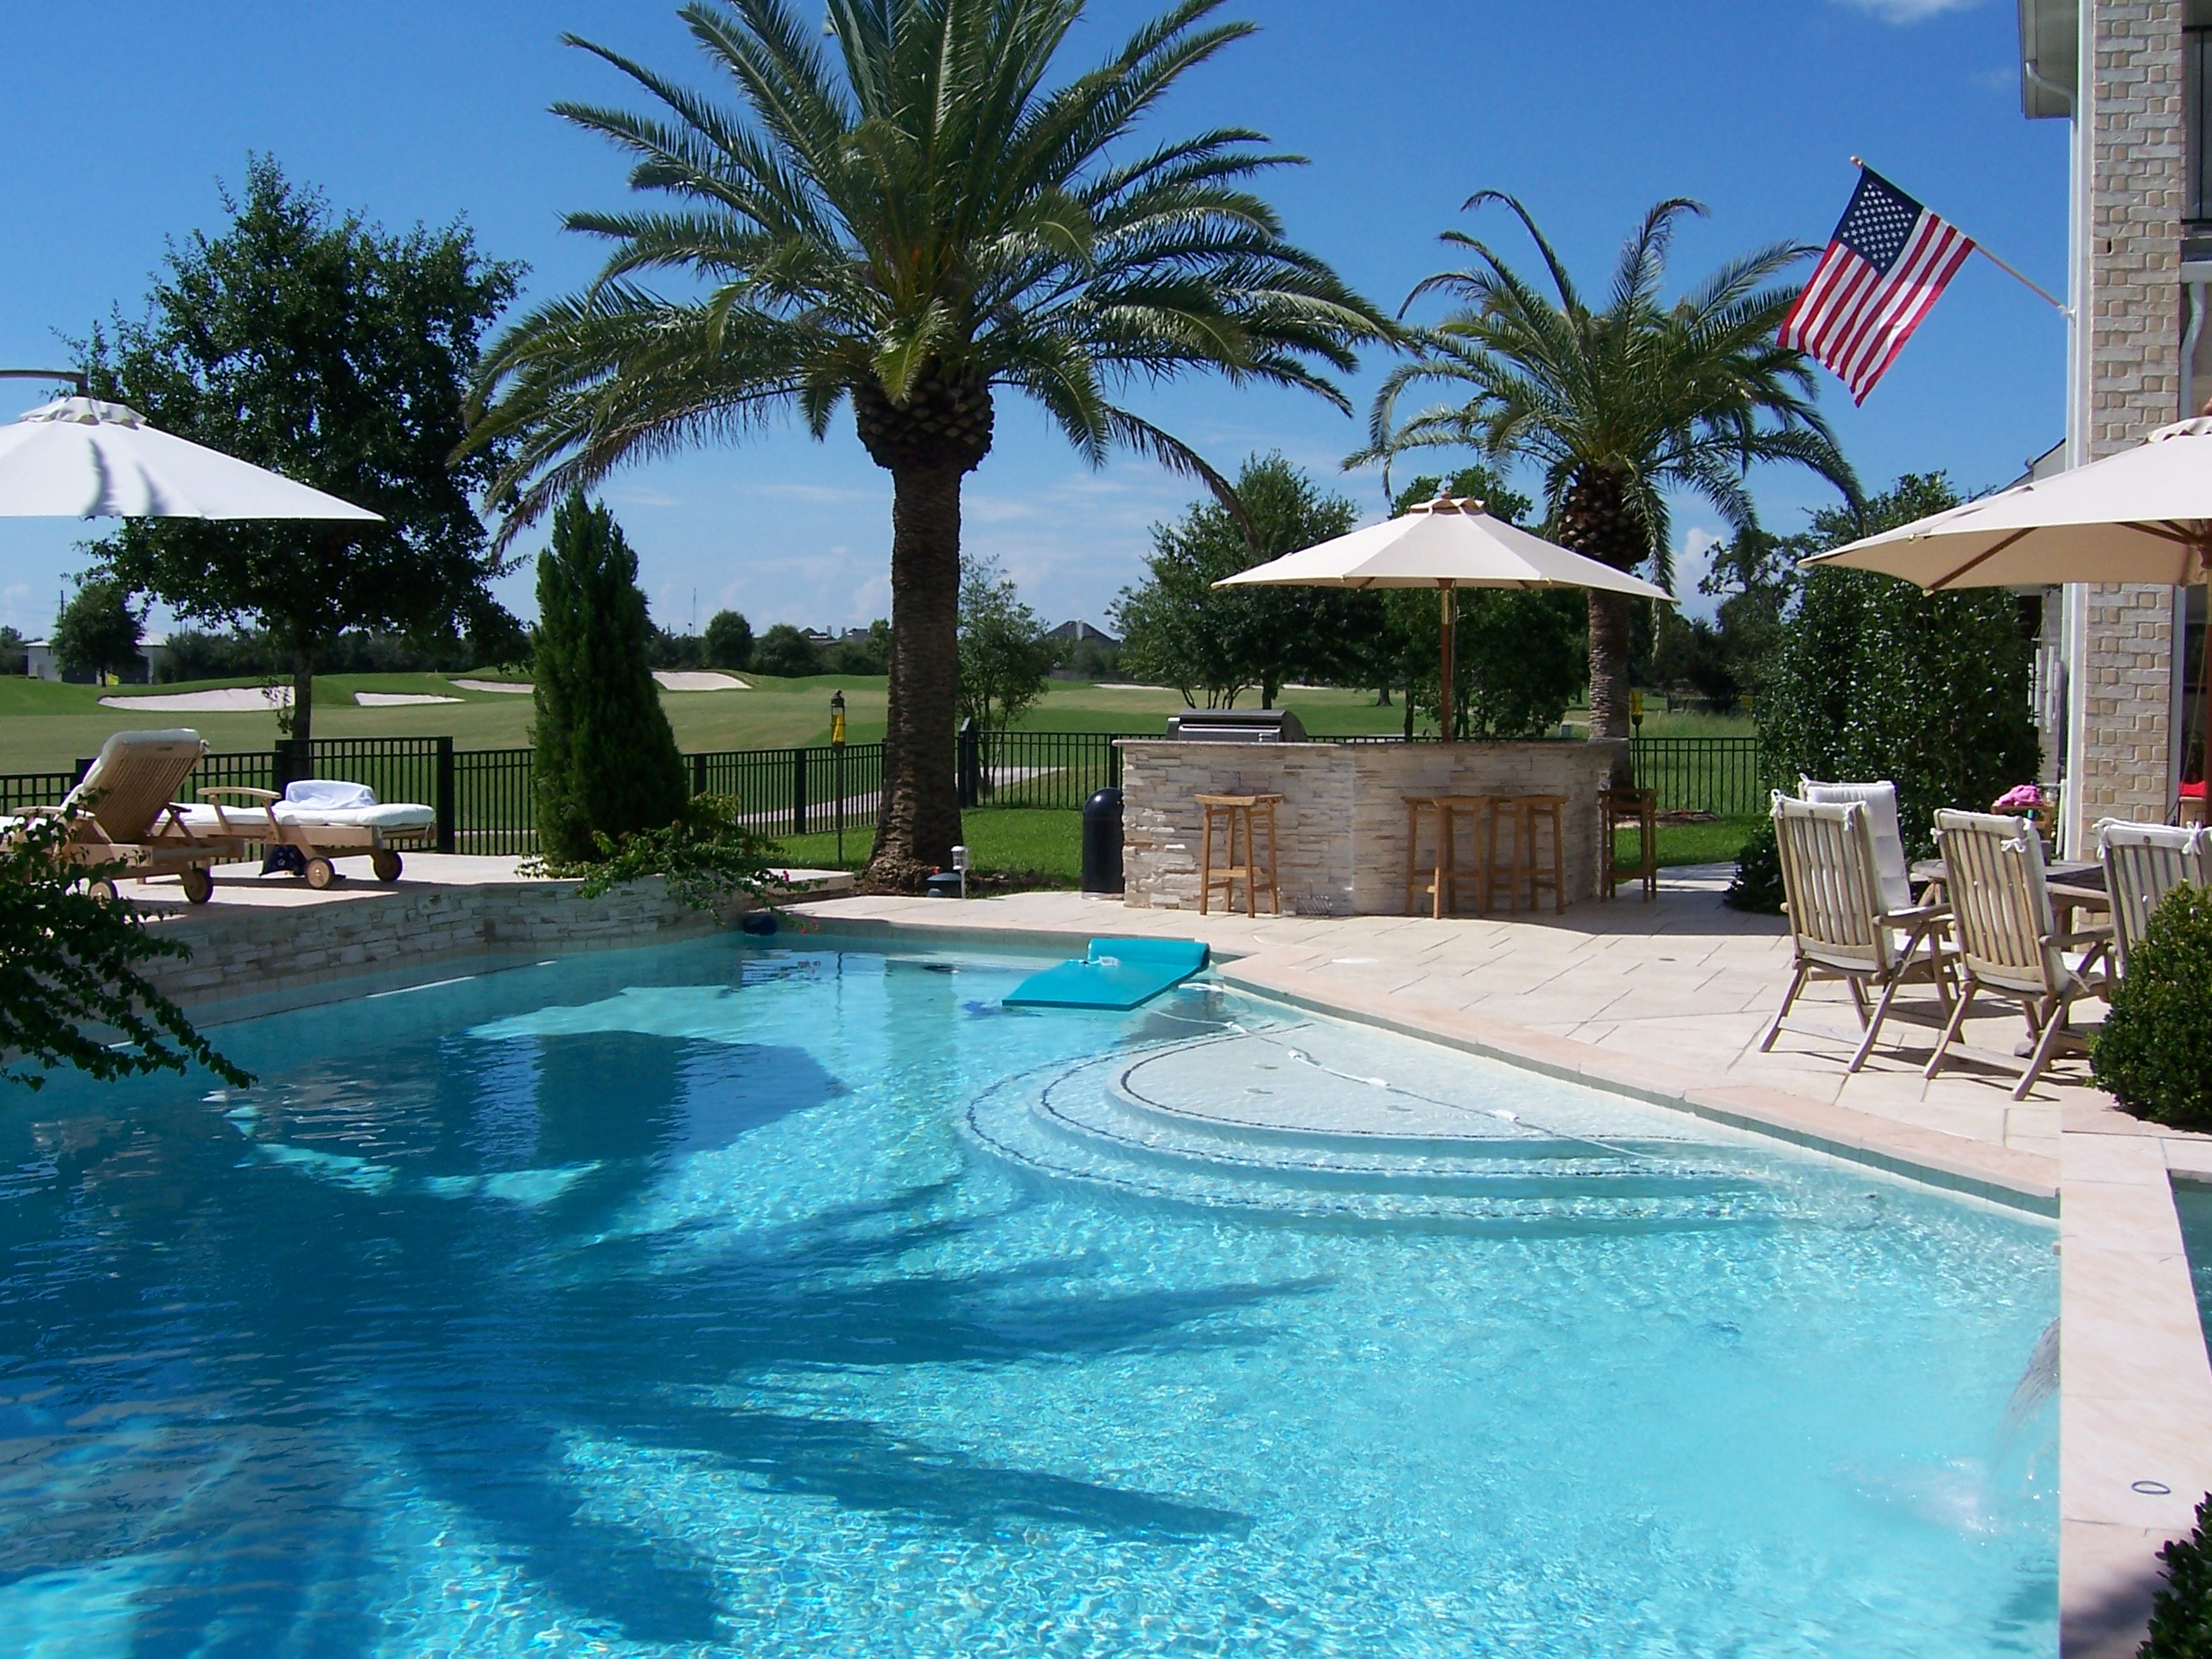 pool-landscaping_16